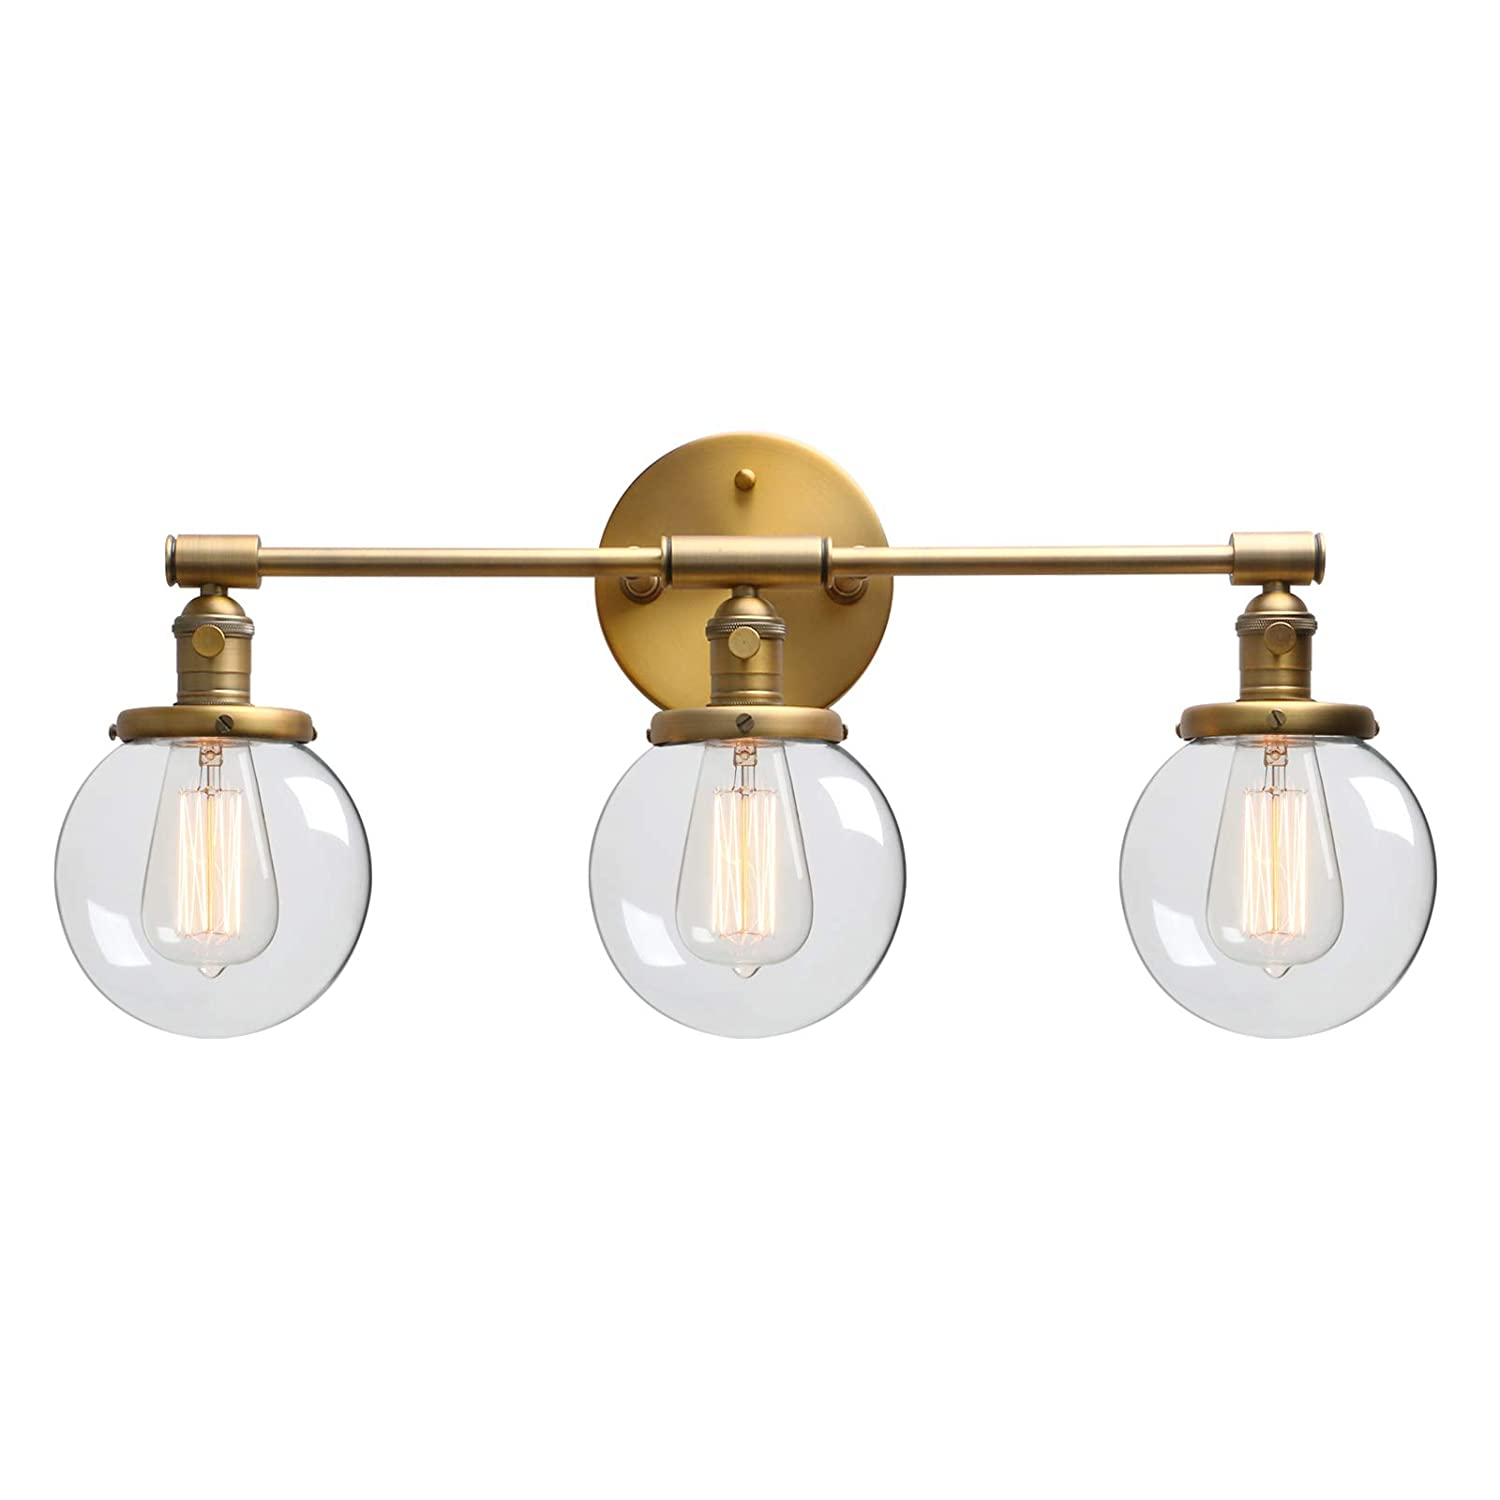 Phansthy industrial wall light 3 lights wall lamp with switch globe clear glass shade bathroom edison bulb lamps e27 socket wall sconce fittings vanity